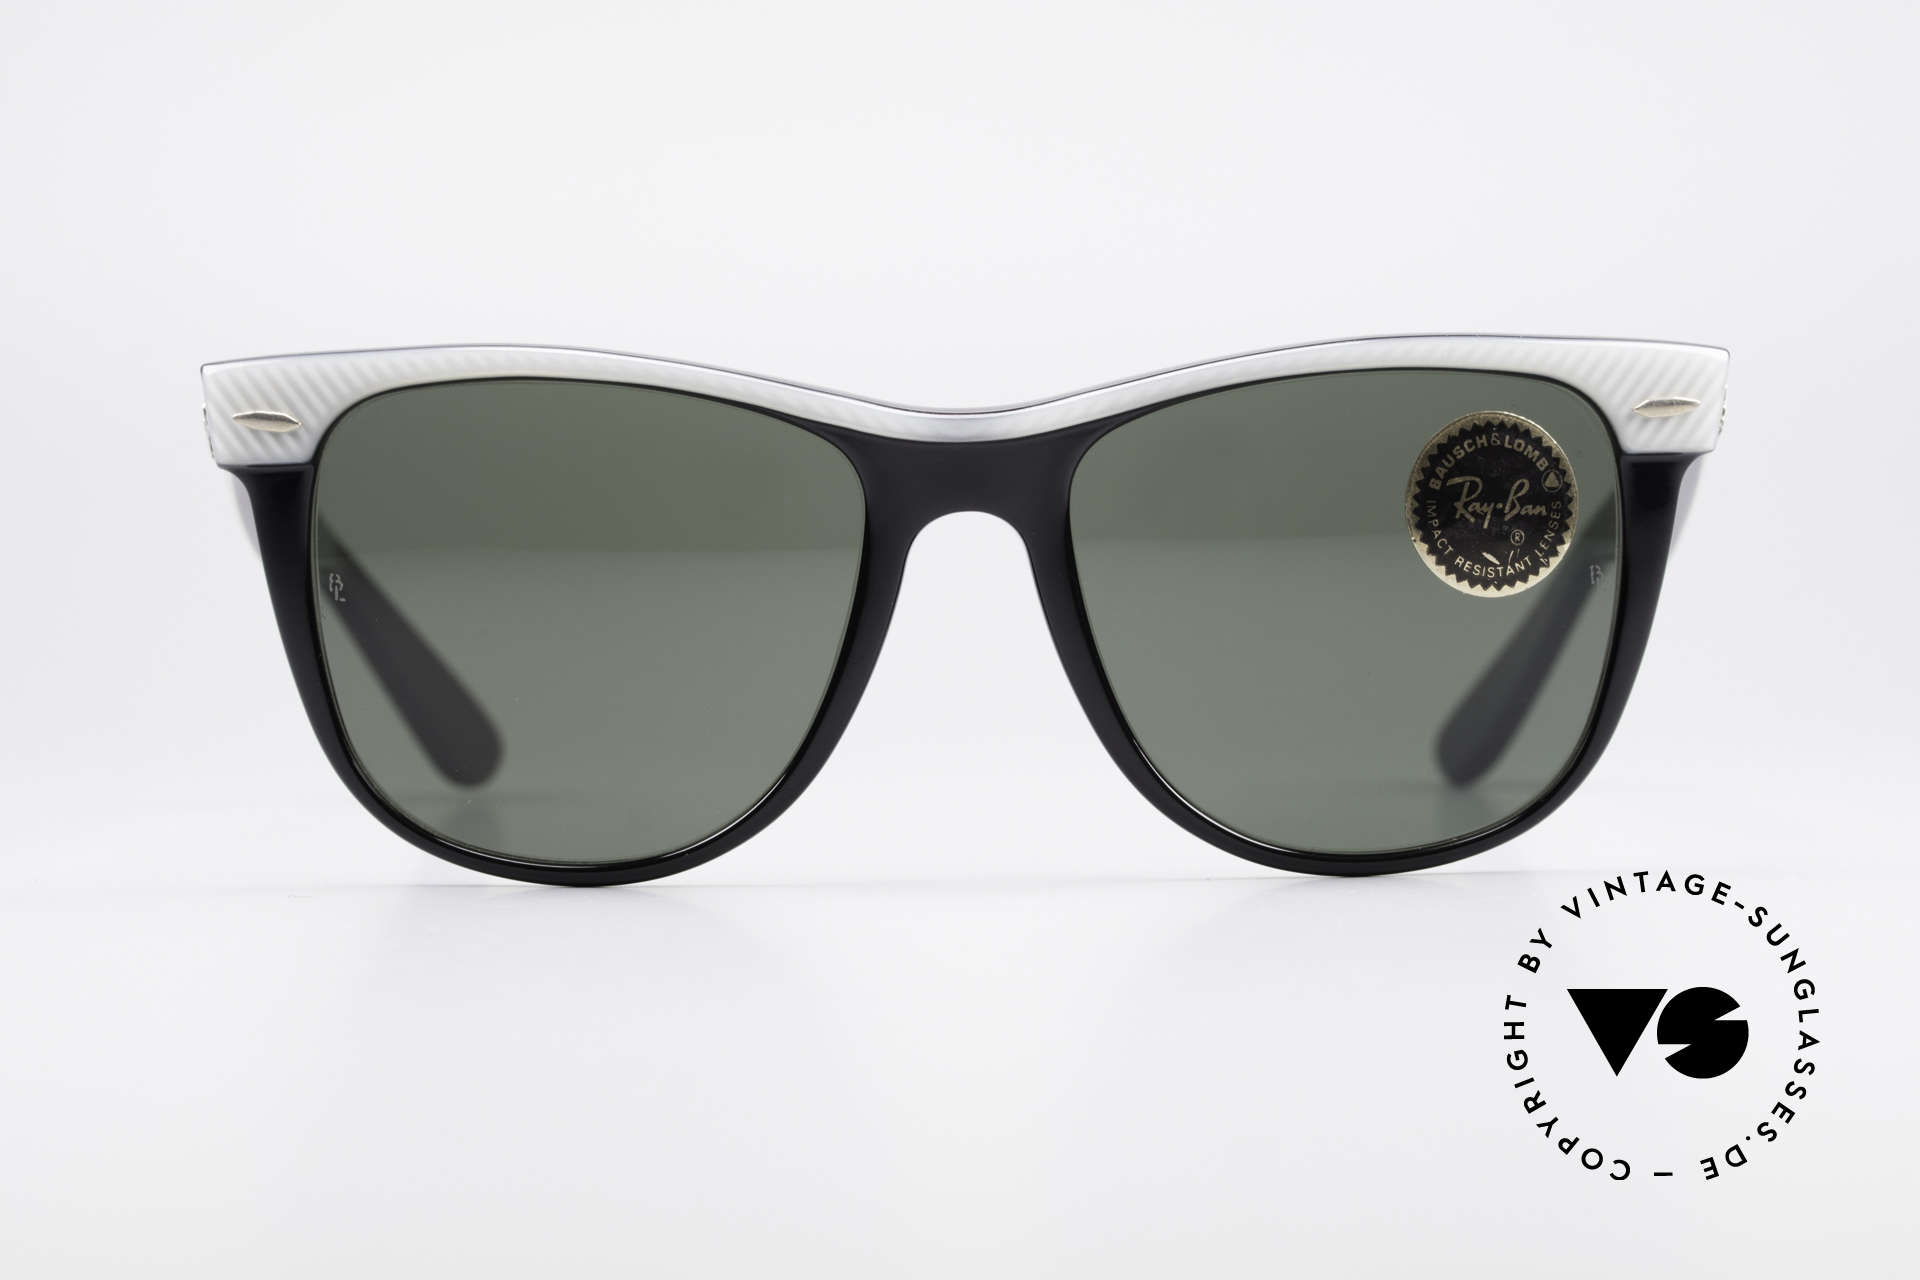 Ray Ban Wayfarer II B&L USA Original Wayfarer, Bausch&Lomb quality lenses (100% UV-protection), Made for Men and Women